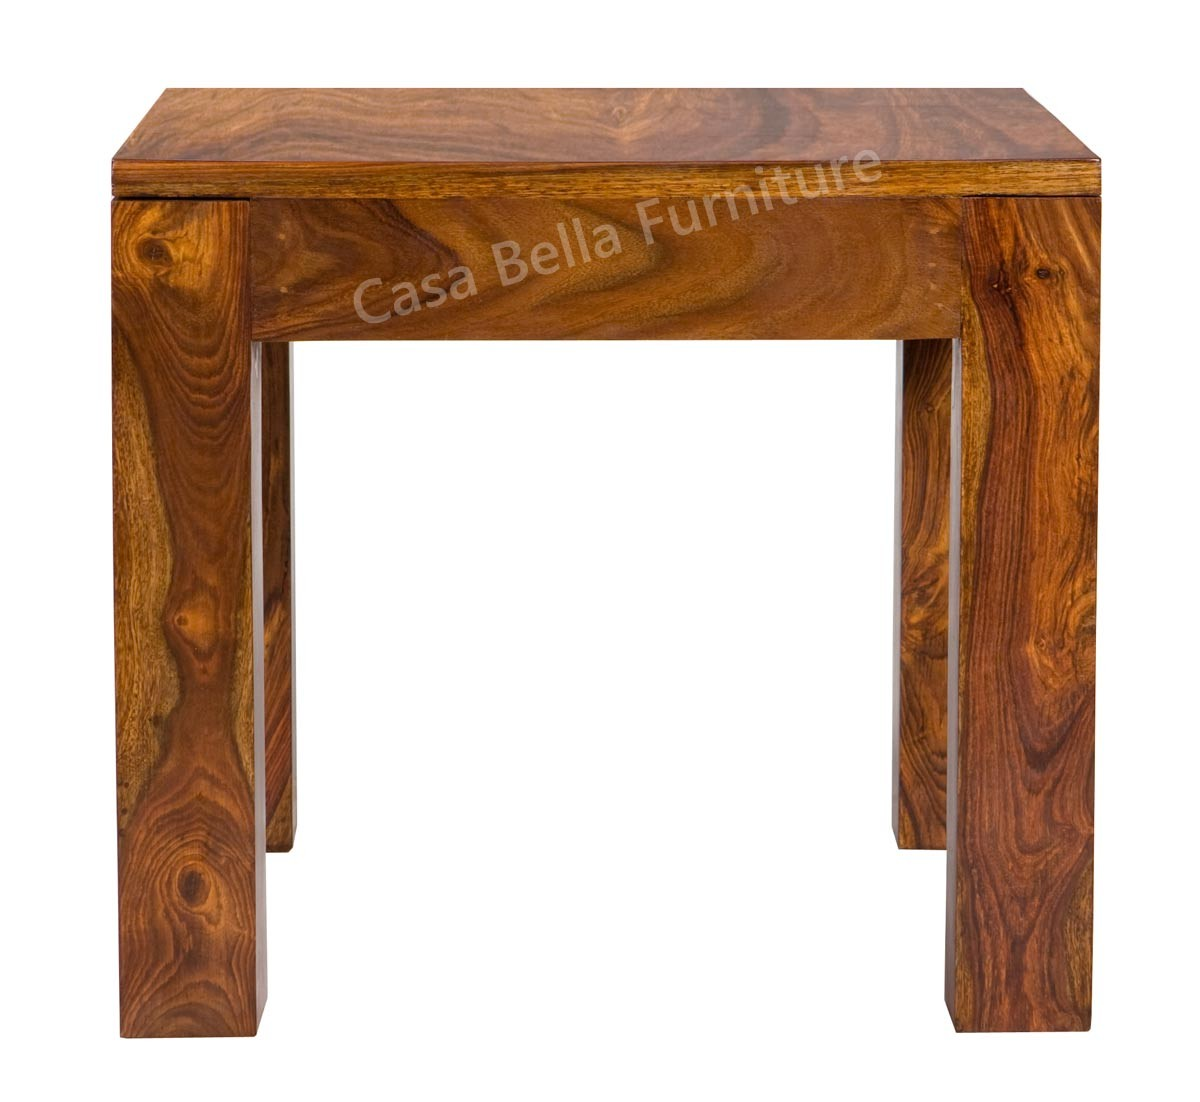 Cuba sheesham lamp table casa bella furniture uk cuba sheesham lamp table 1 aloadofball